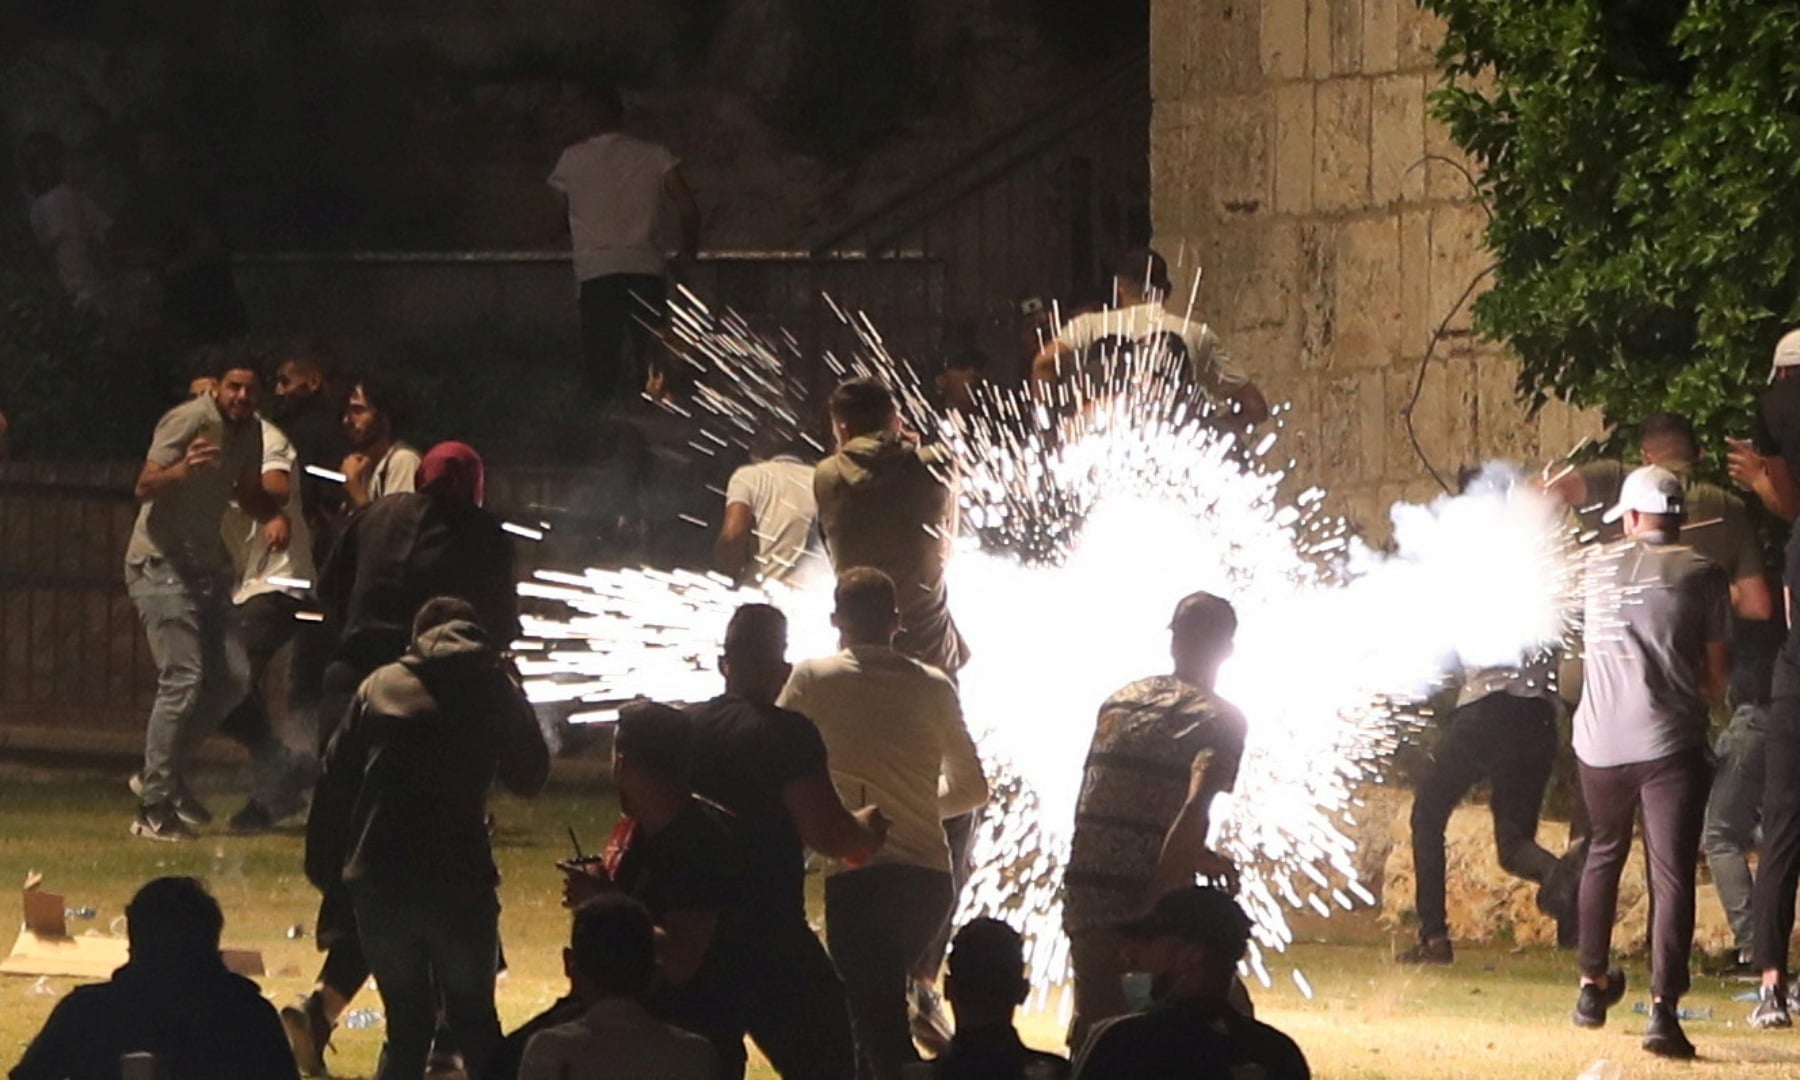 Palestinians react as Israeli police fire a stun grenade during clashes on Laylat al-Qadr at Jerusalem's Old City, May 8. — Reuters